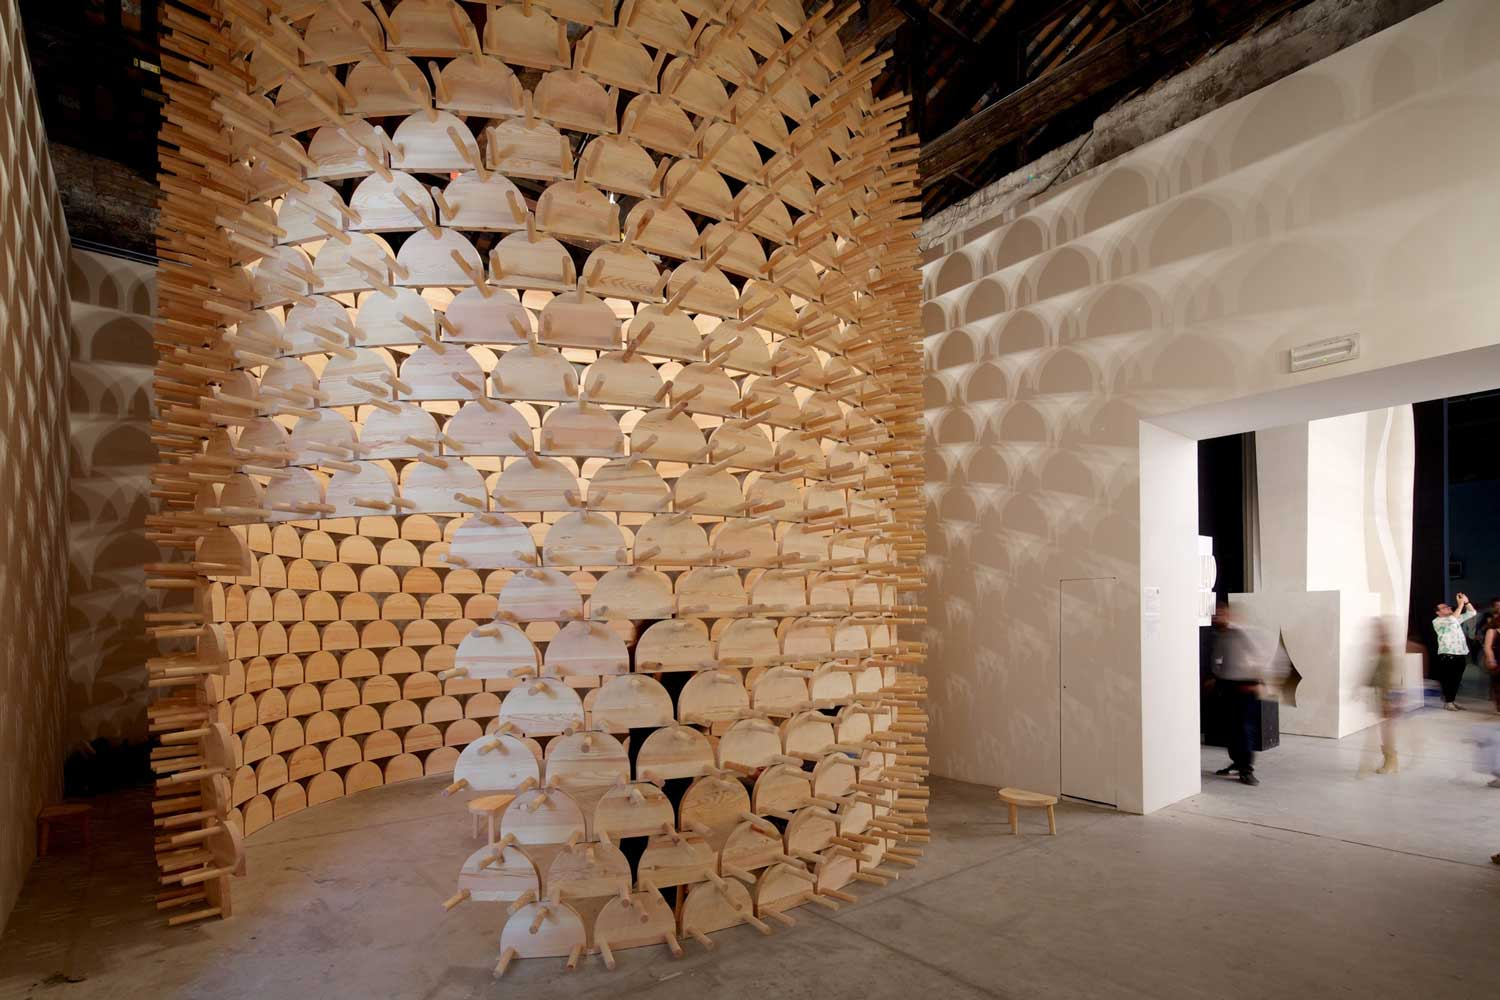 'Visibility Imposed Modernity' Kosovo's Pavilion at the Venice Biennale 2014   Yellowtrace